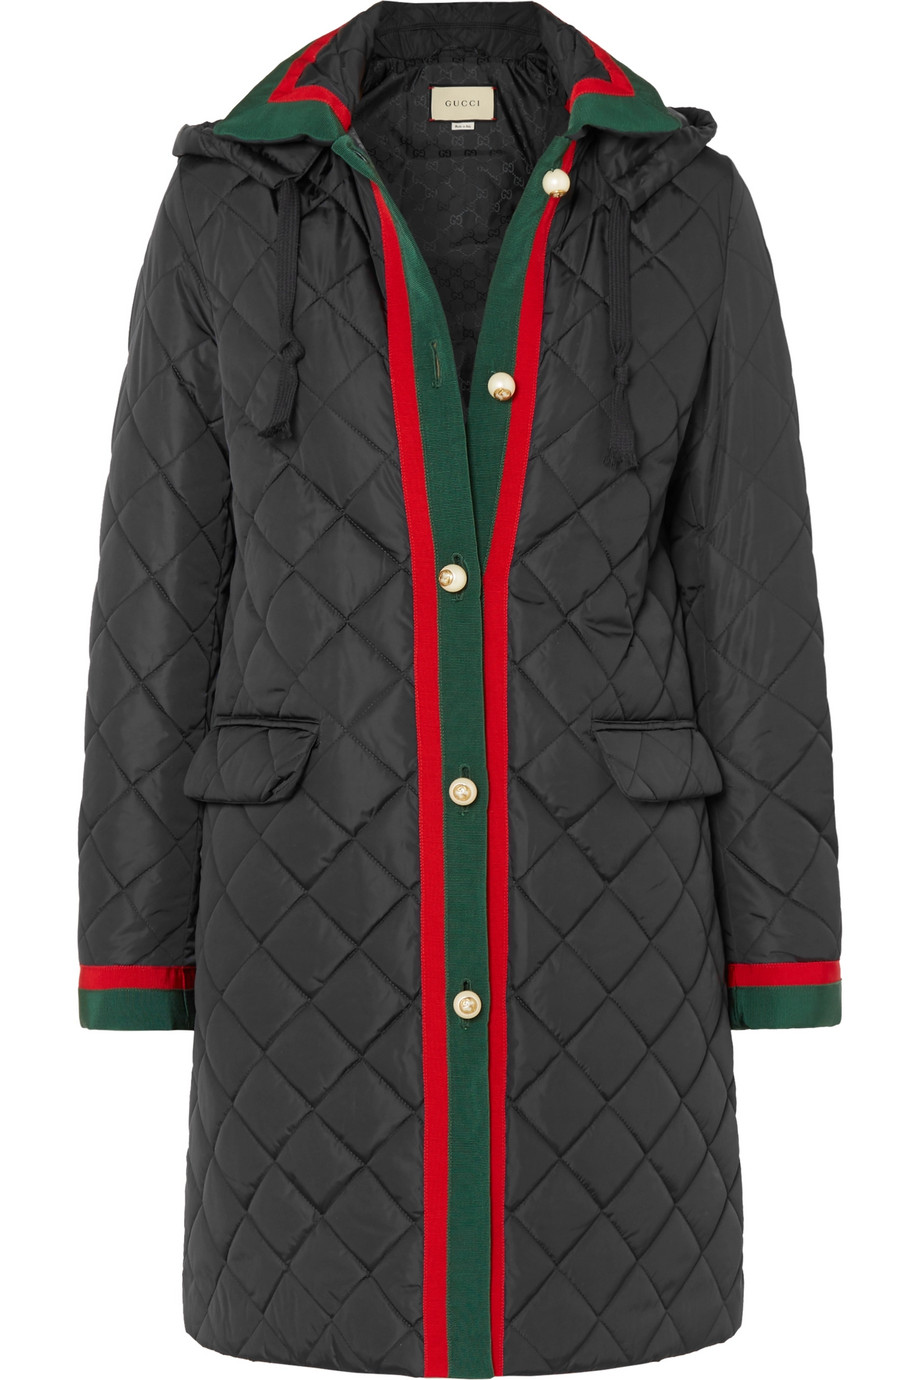 GUCCI Hooded grosgrain-trimmed quilted shell coat, £1,750